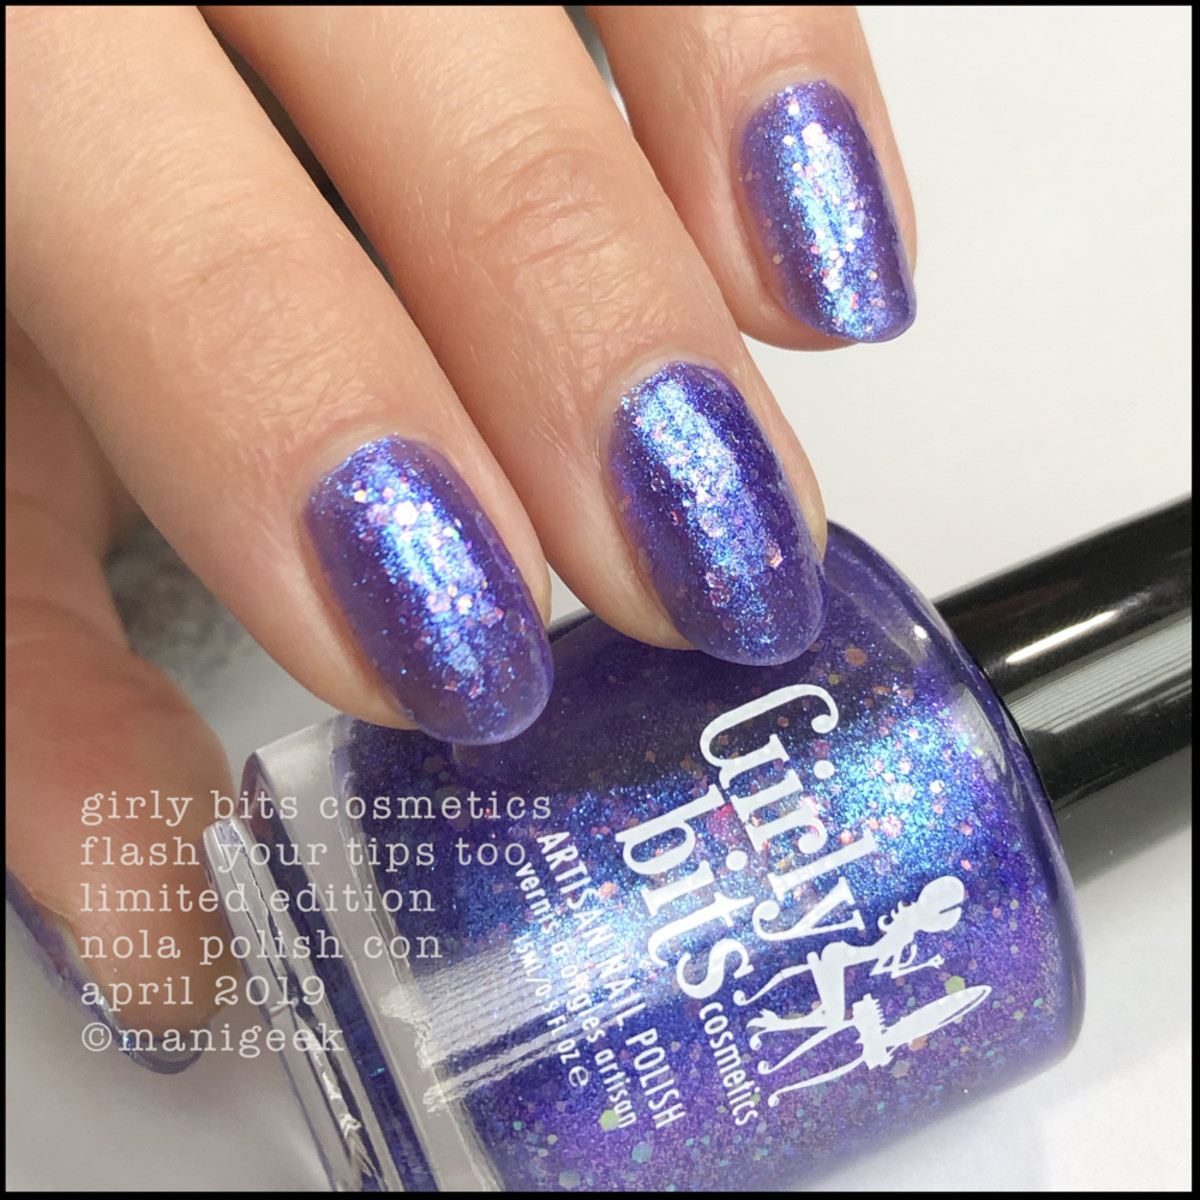 Girly Bits Flash Your Tips Too - LE Girly Bits Polish Con NOLA April 2019